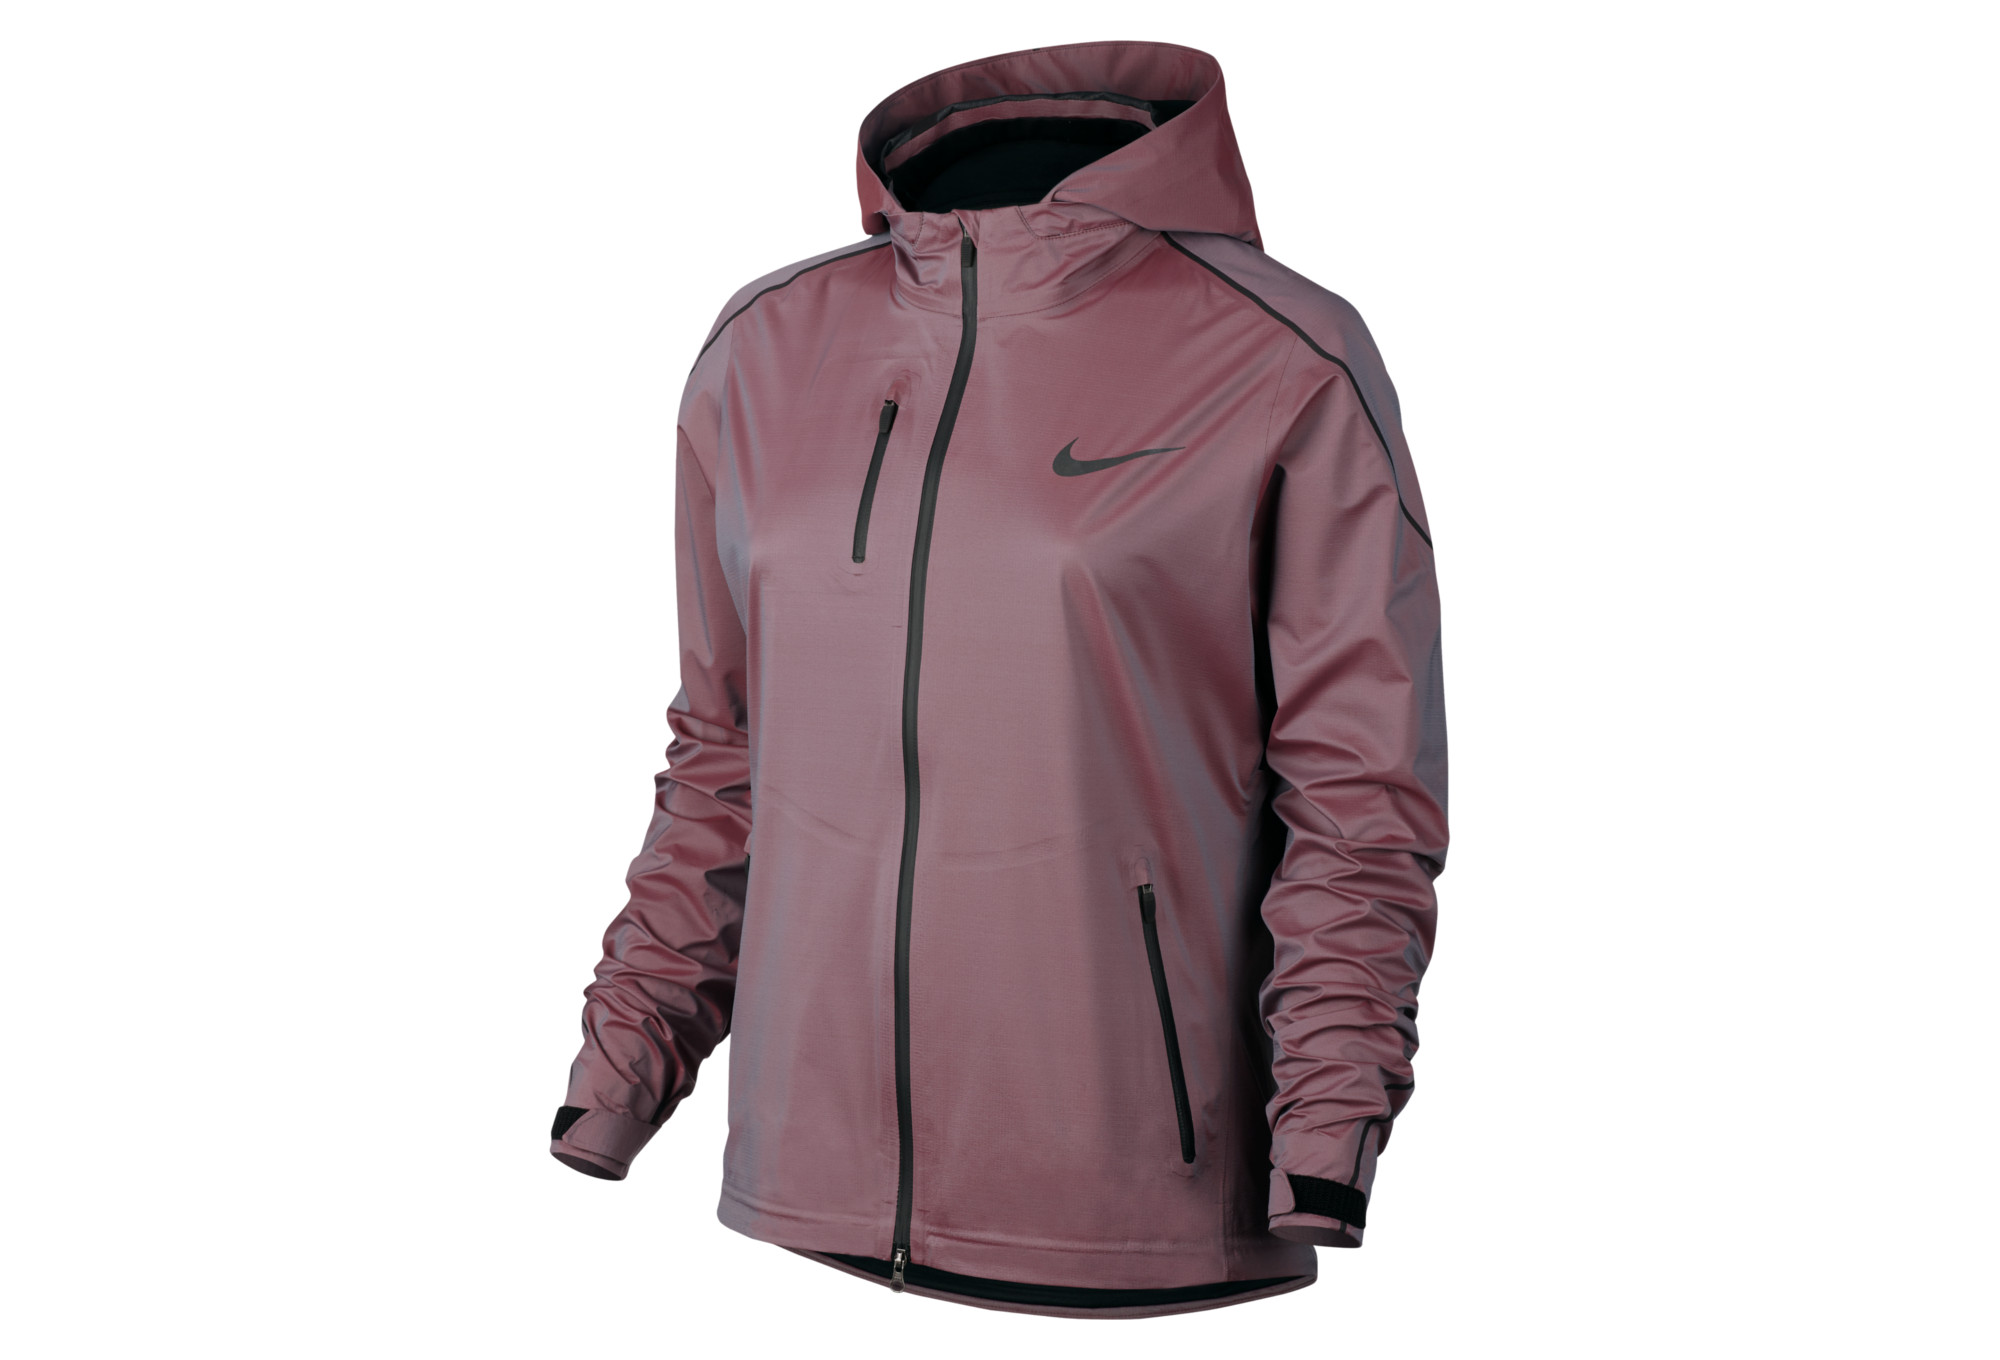 veste imperm able femme nike hypershield bleu rose. Black Bedroom Furniture Sets. Home Design Ideas